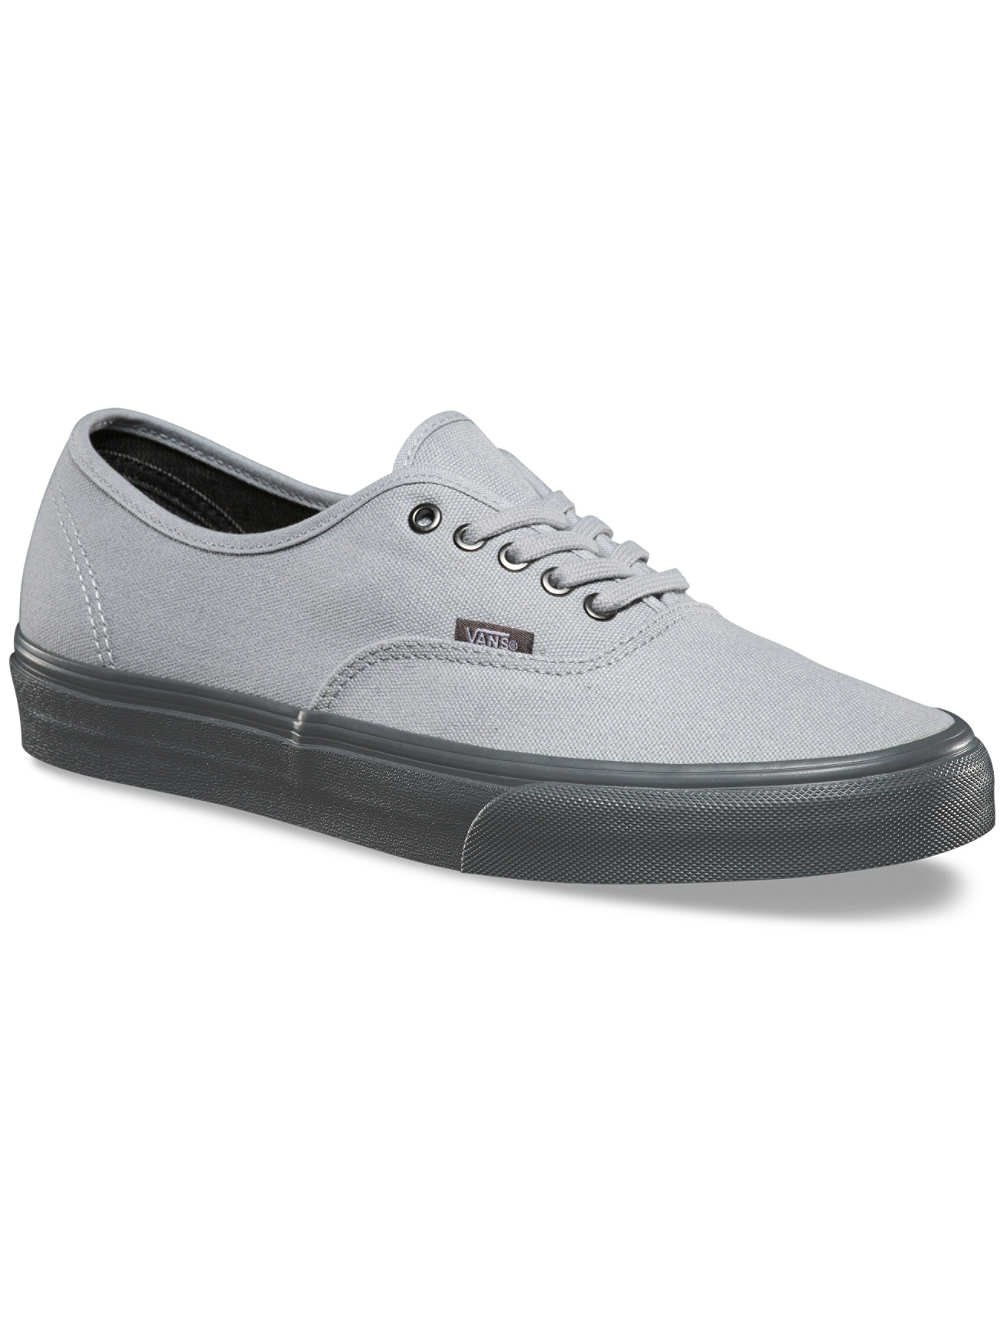 0156c000e3 Galleon - Vans Unisex Adult (C D) Authentic High-Rise Pewter VN0A38EMMOM  Mens